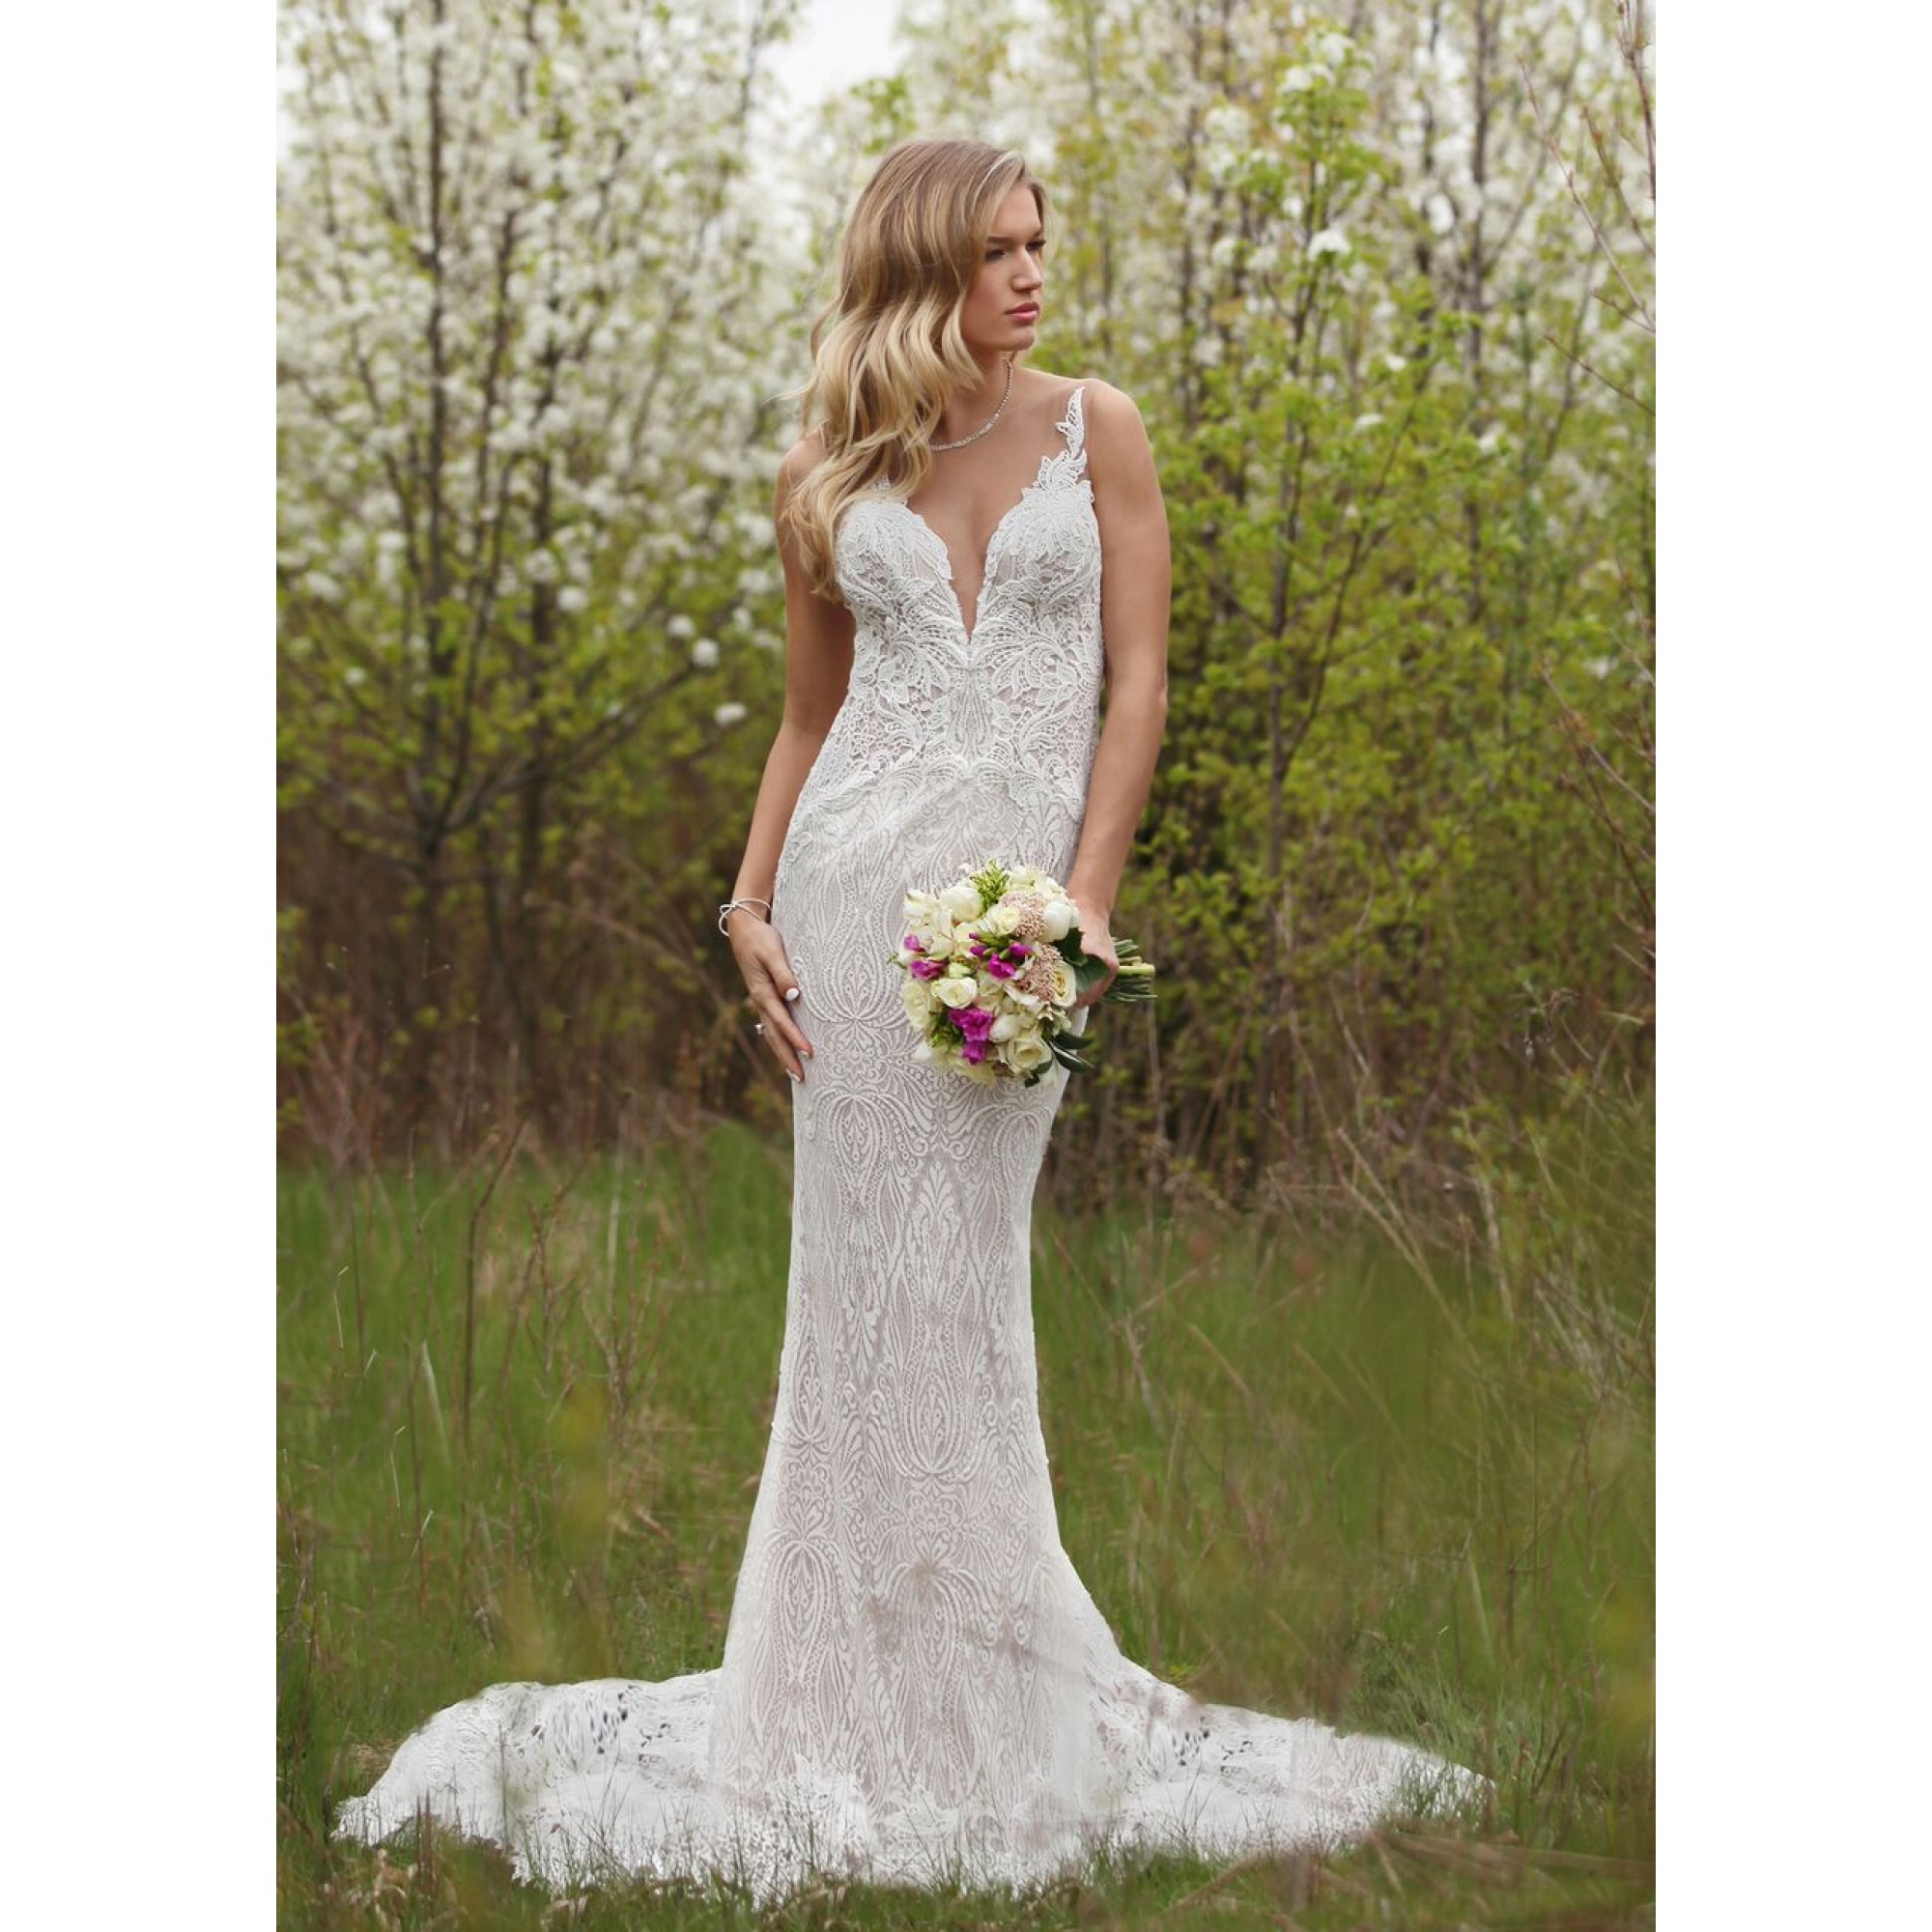 Marisa Bridal D94|Marisa Wedding dress D94|tampabridalshops.com ...